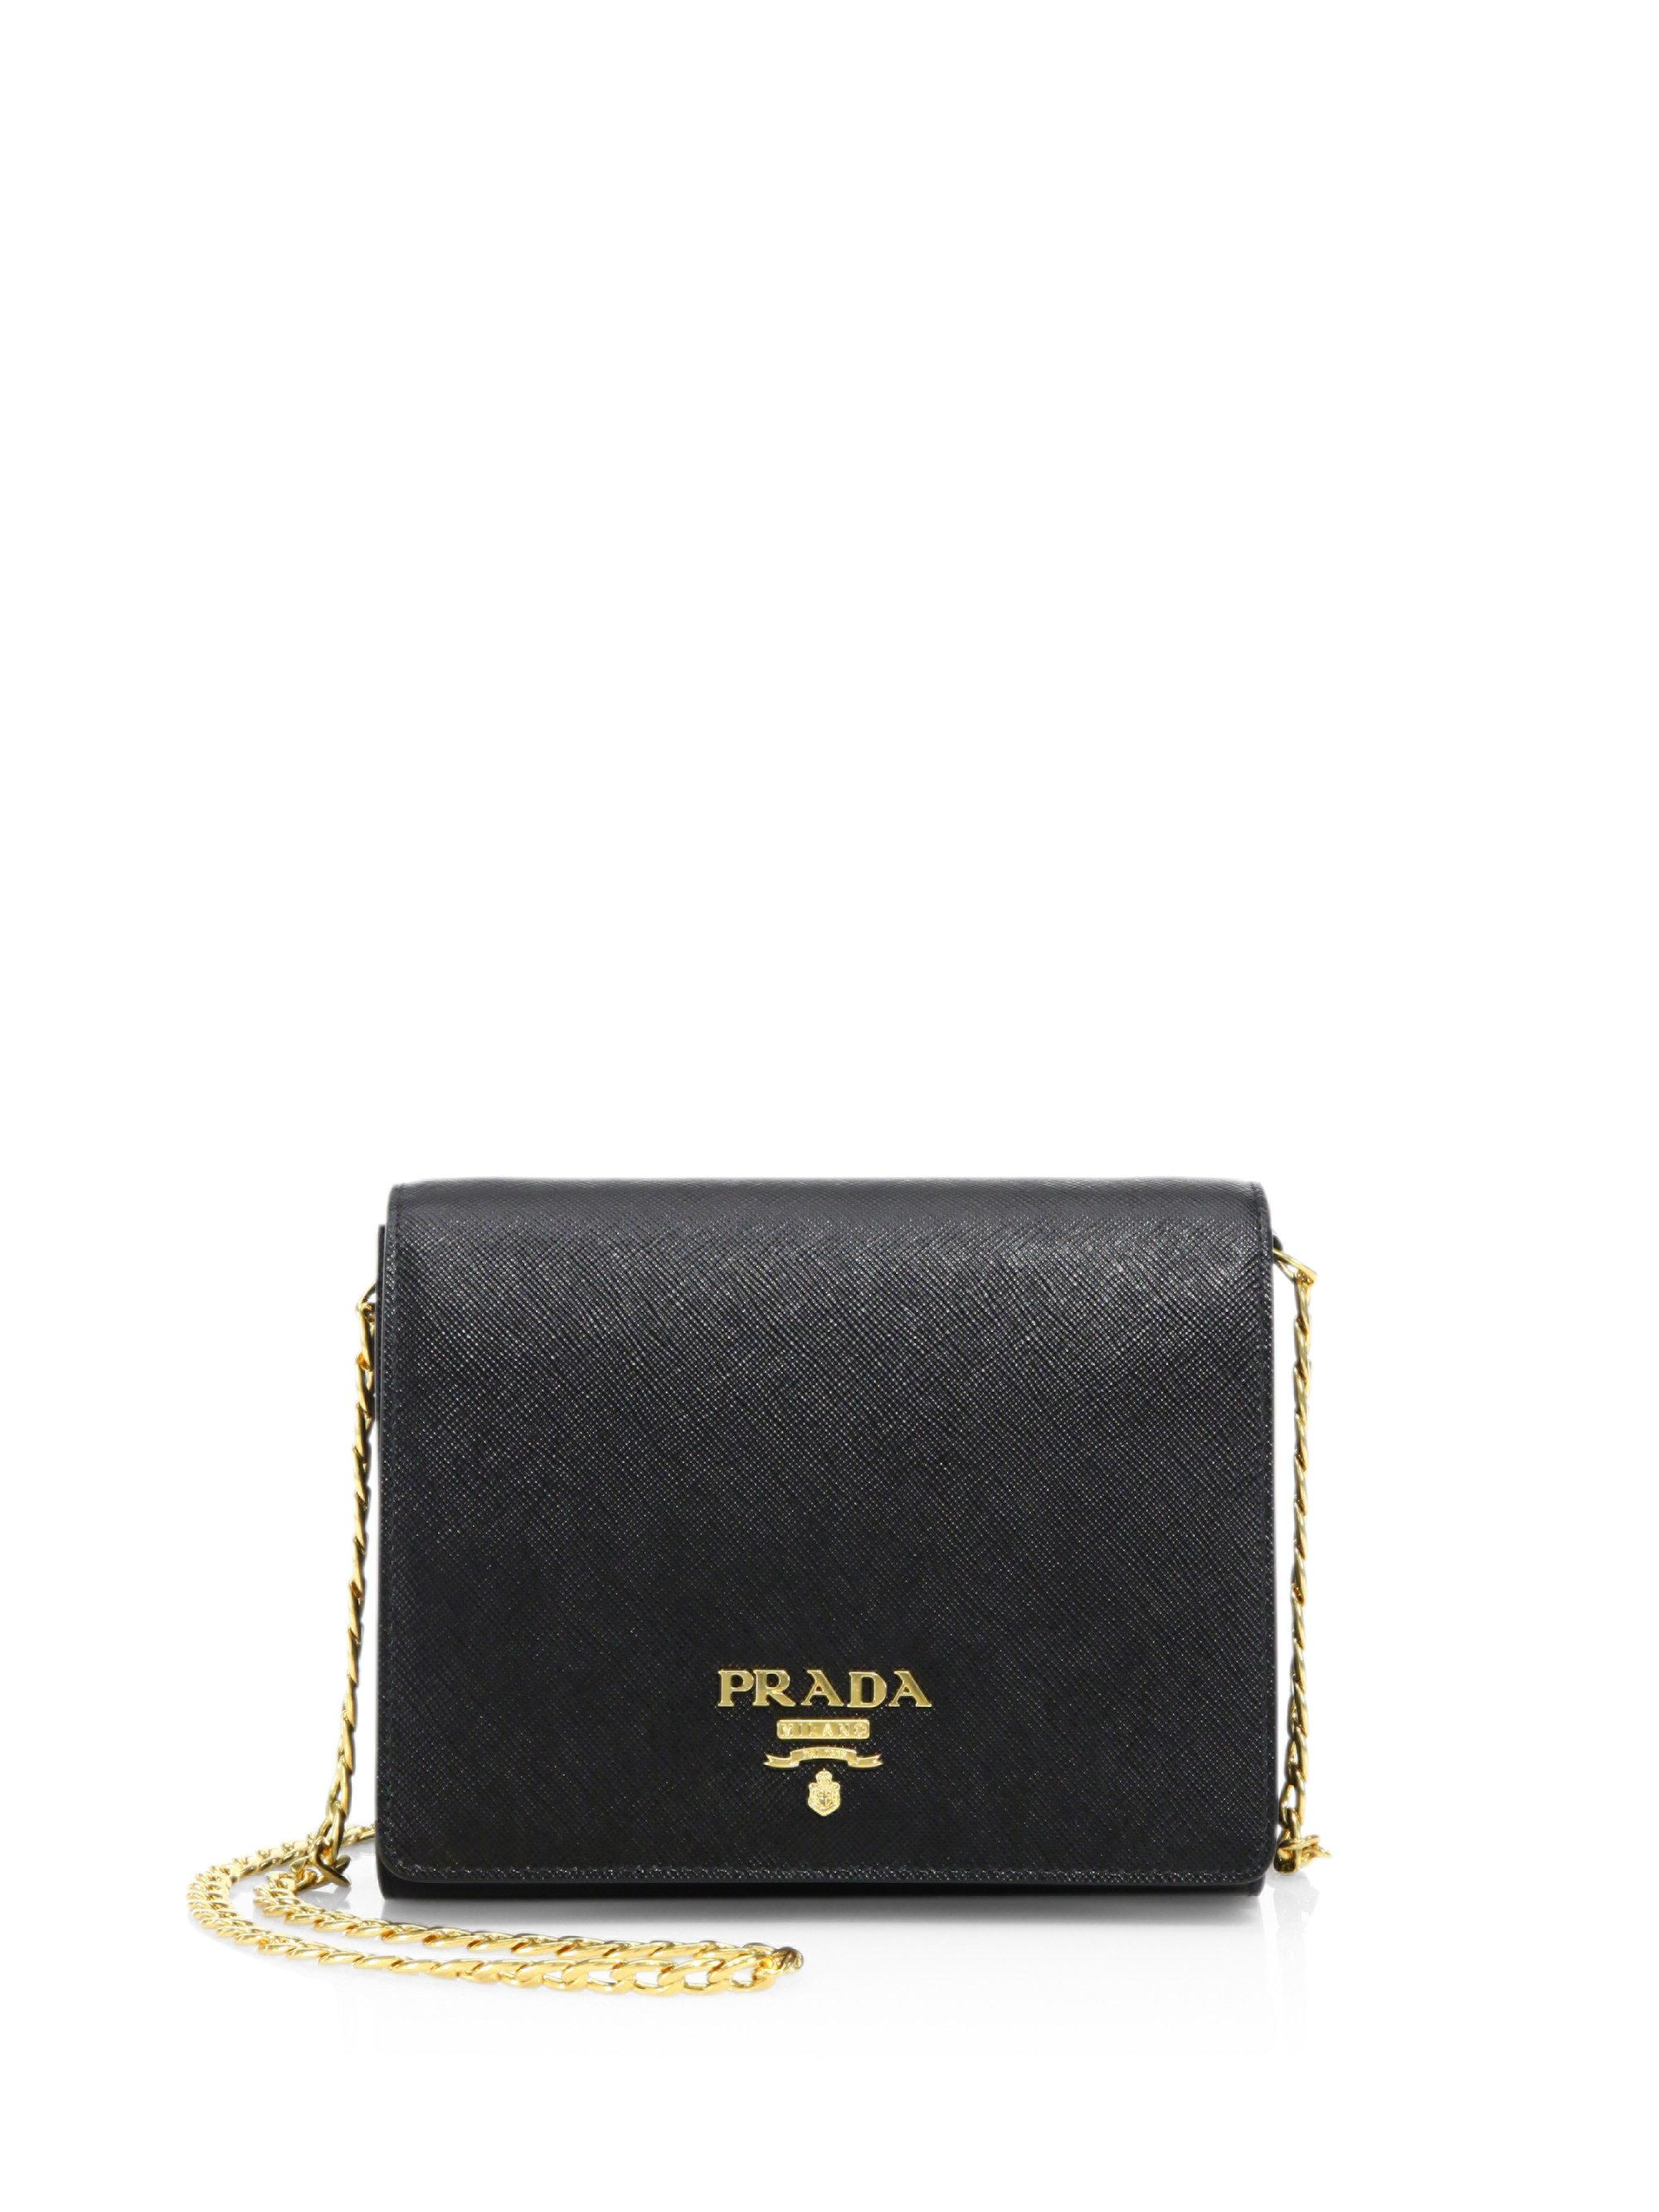 cbc18e52bf8f Prada Saffiano Lux Chain Wallet in Black - Lyst